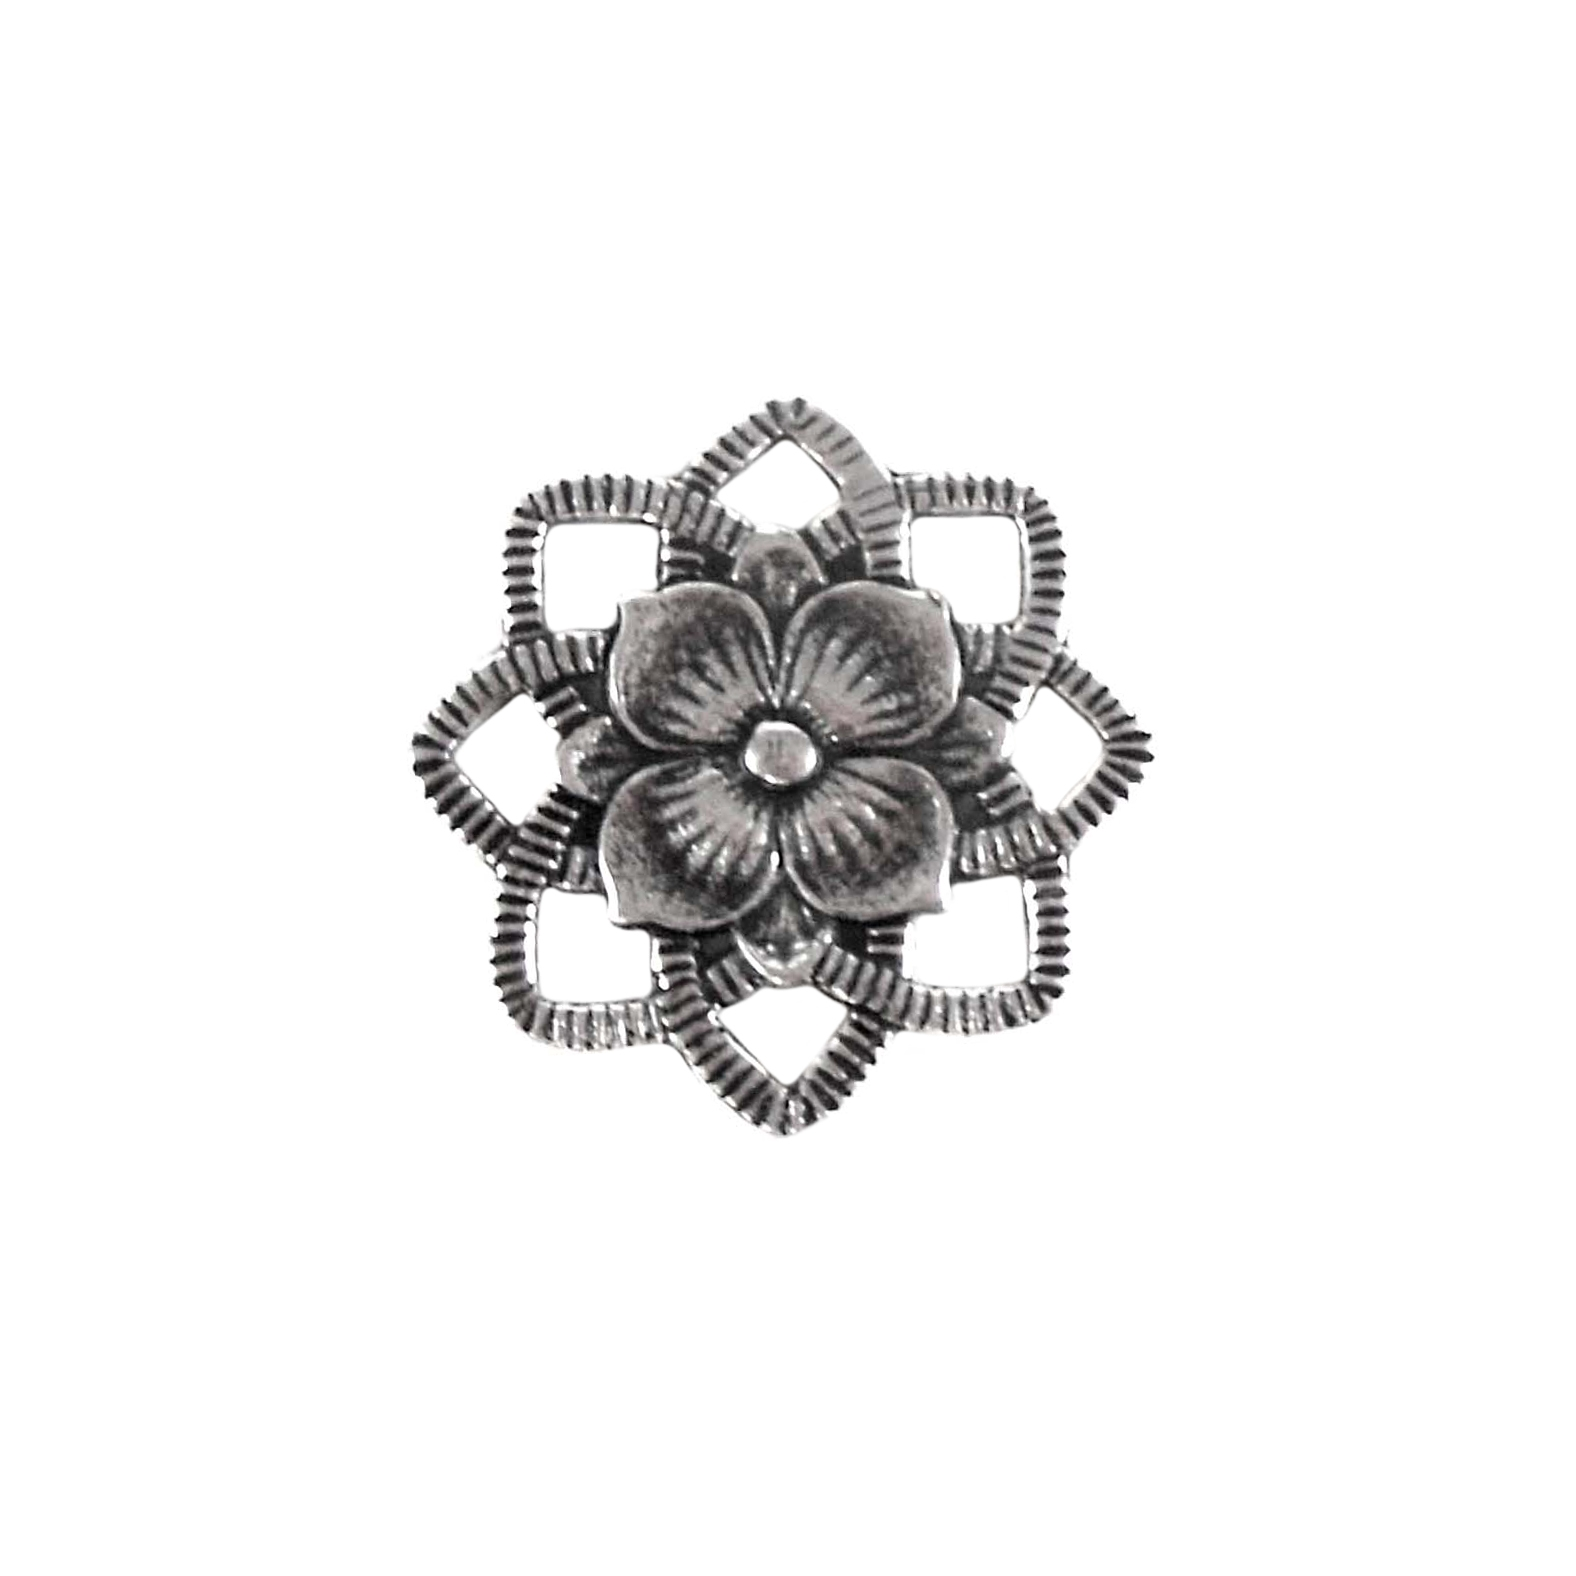 brass flowers, jewelry connectors, jewelry making,04758, antique silver, silverware silver plate, silver plate, vintage jewelry supplies, beading supplies, brass jewelry parts, US made, nickel free, Bsue Boutiques